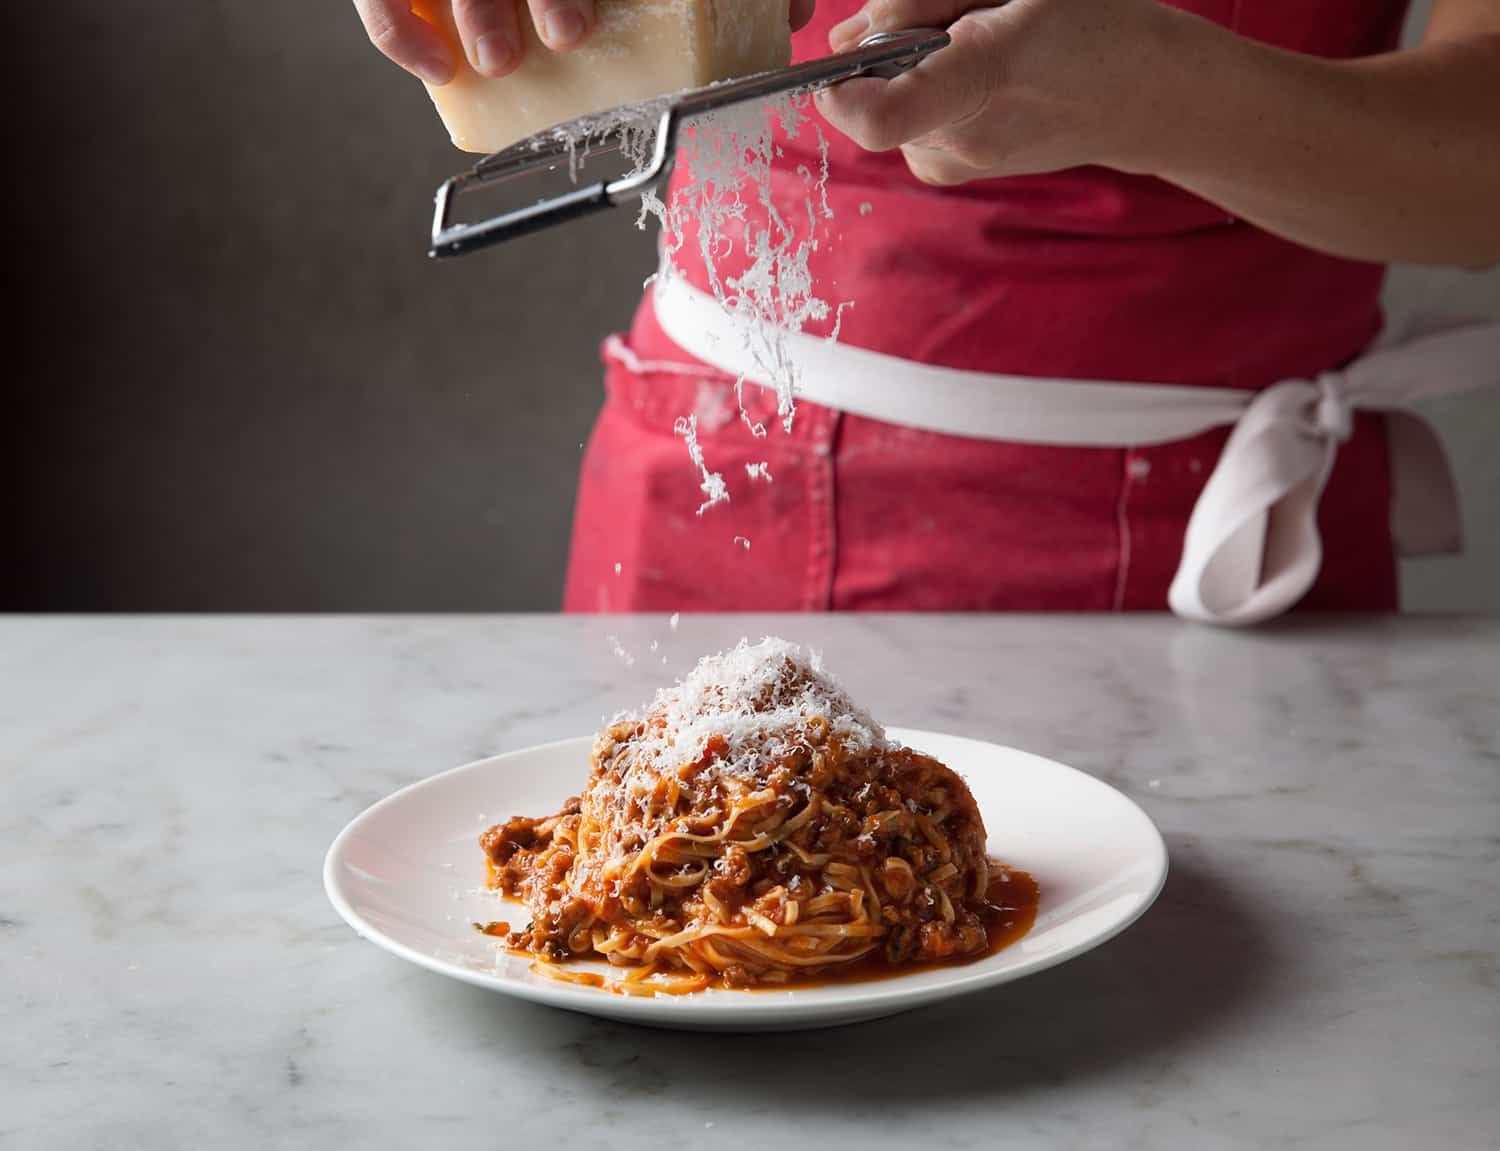 Milo-&-Olive_Making-Fresh-Tagliarini-Bolognese_Photo-Credit-Rick-Poon-3